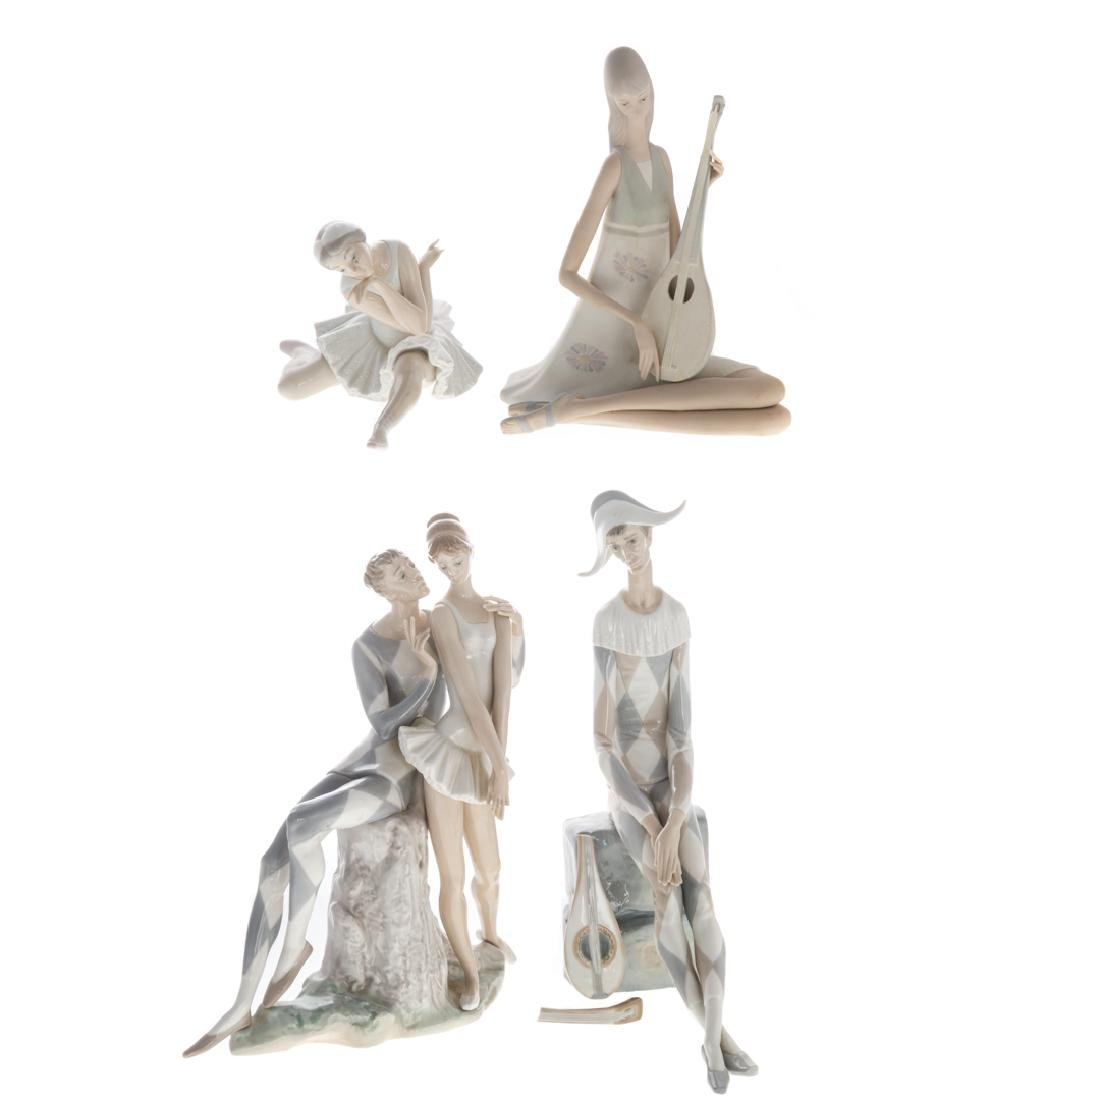 Four Lladro porcelain groups and figures